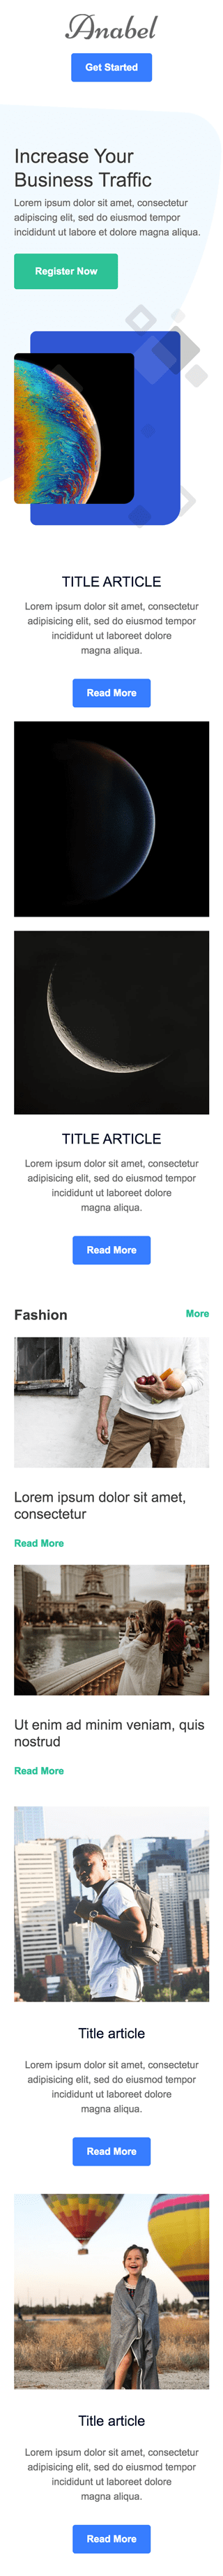 Promo Email Template «Short info» for Publications & Blogging industry mobile view